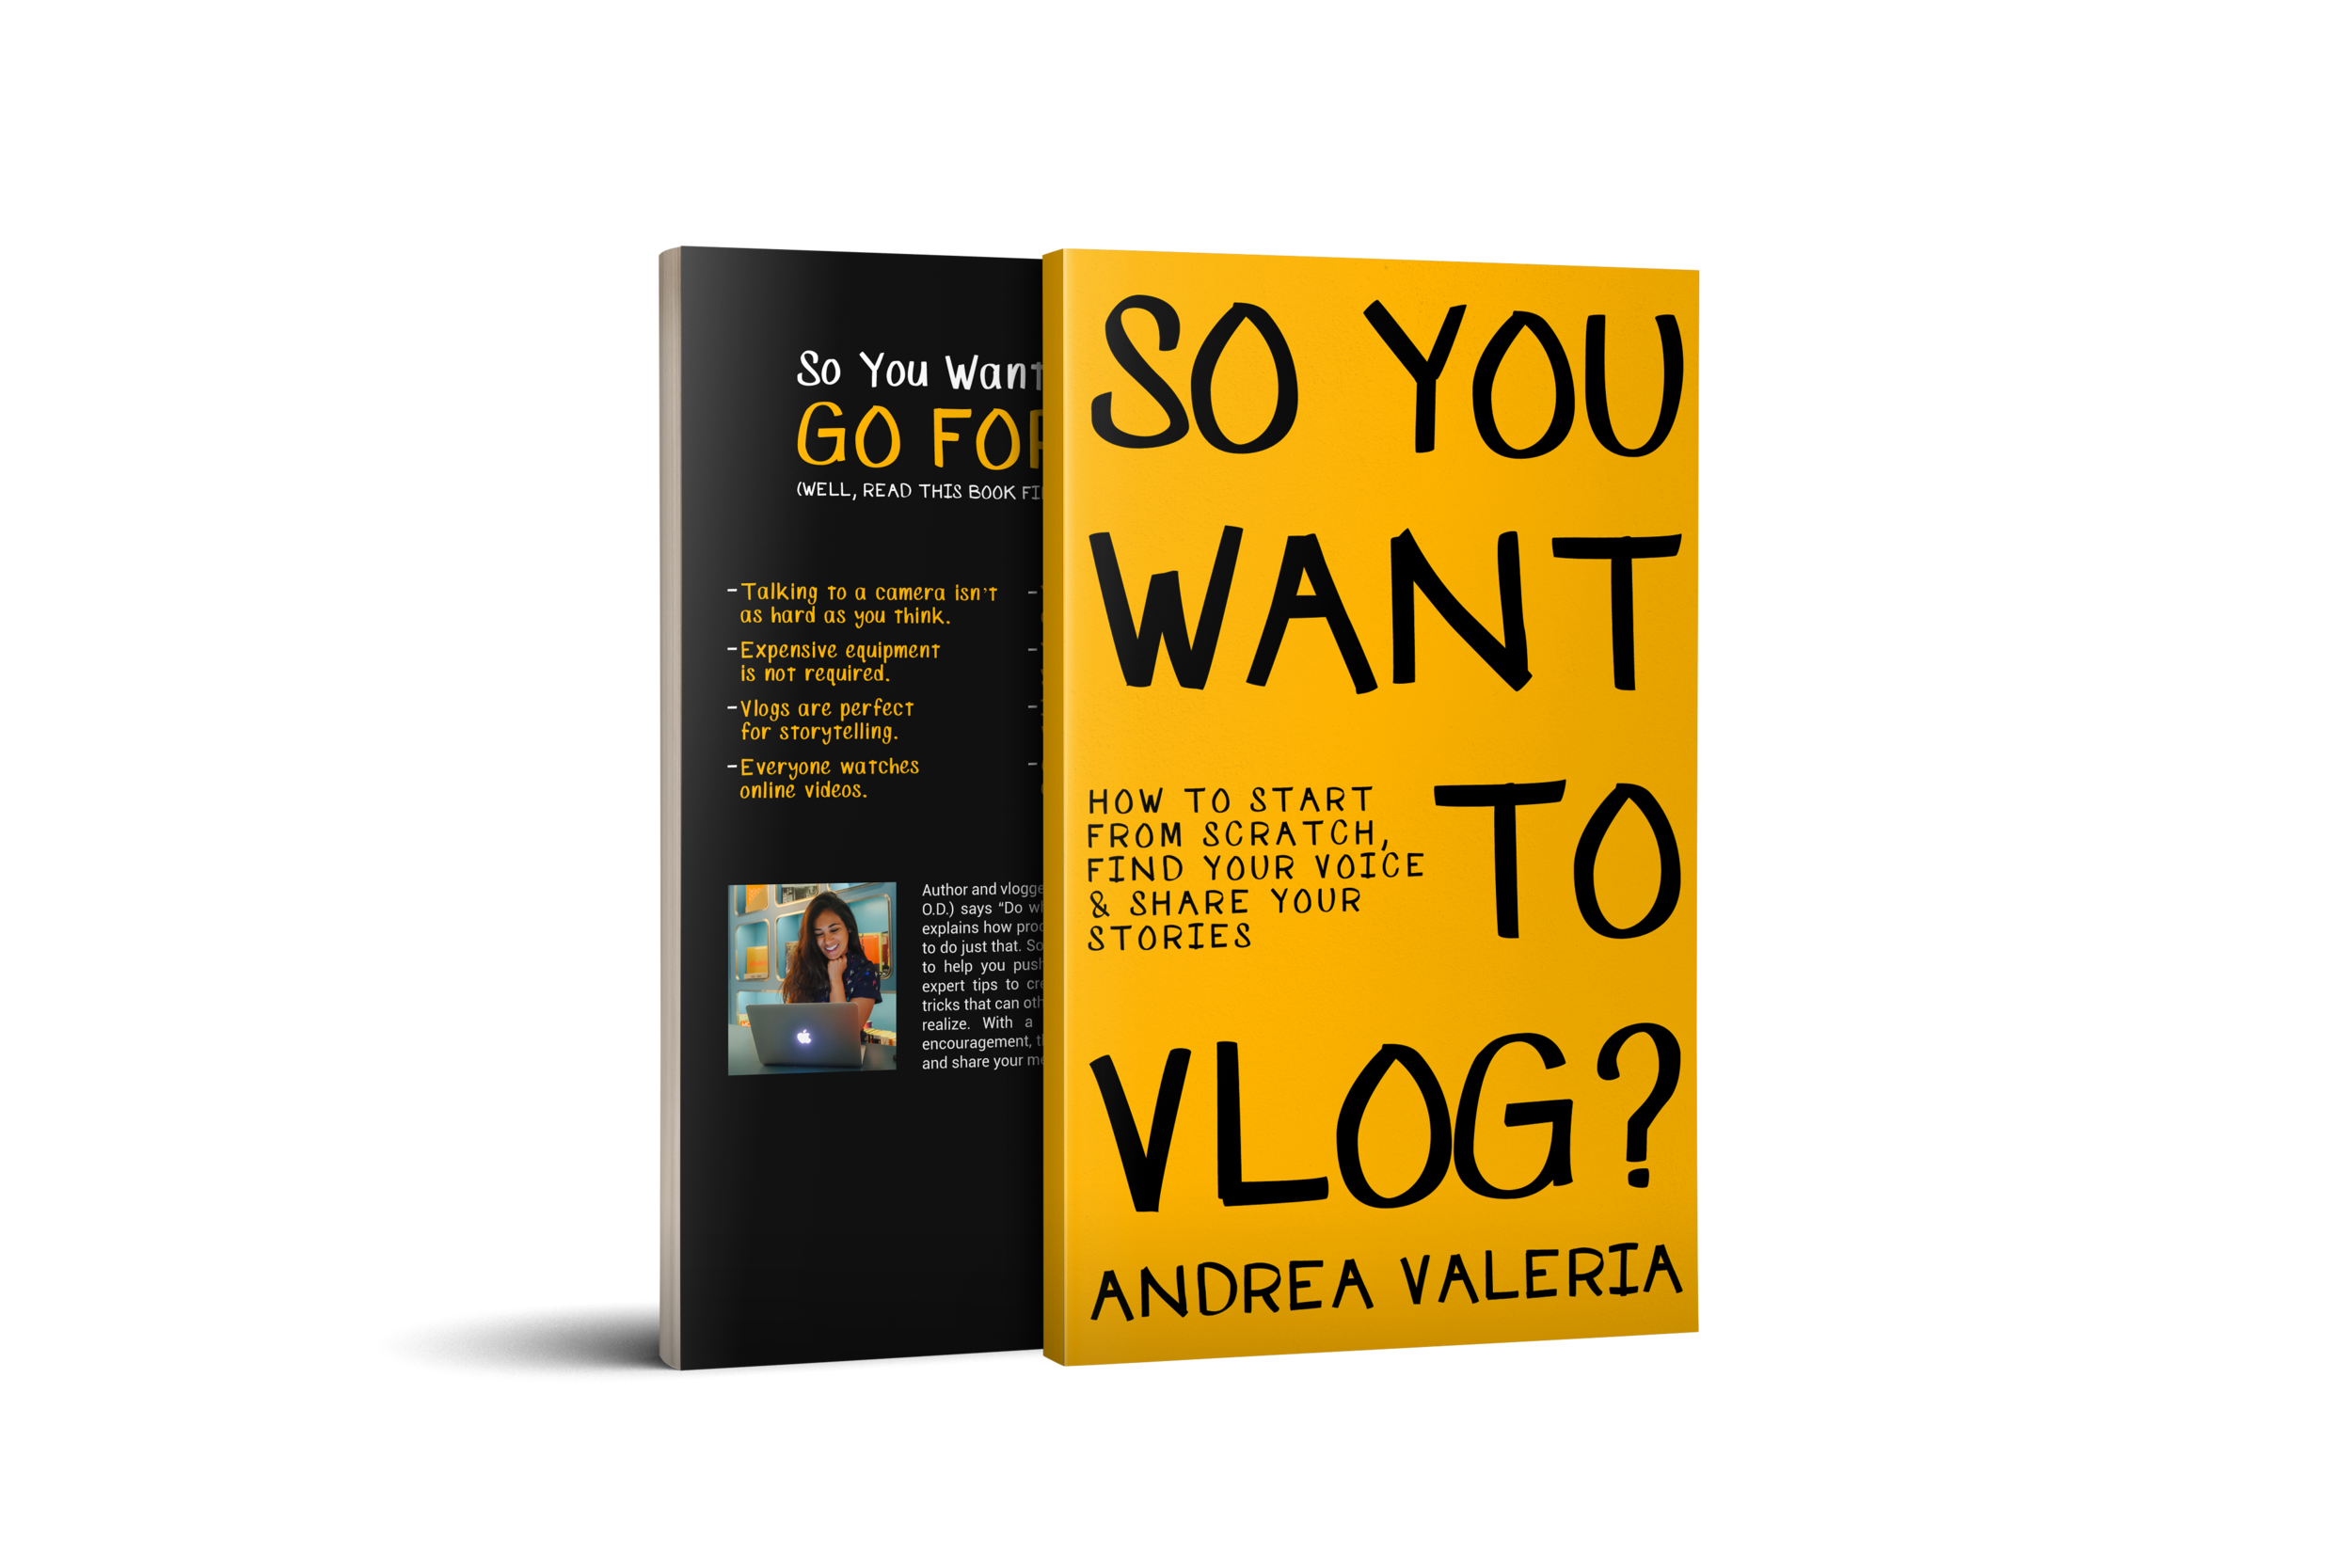 so you want to vlog, how to vlog, become a vlogger, start a vlog, andrea valeria, it's a travel o.d.